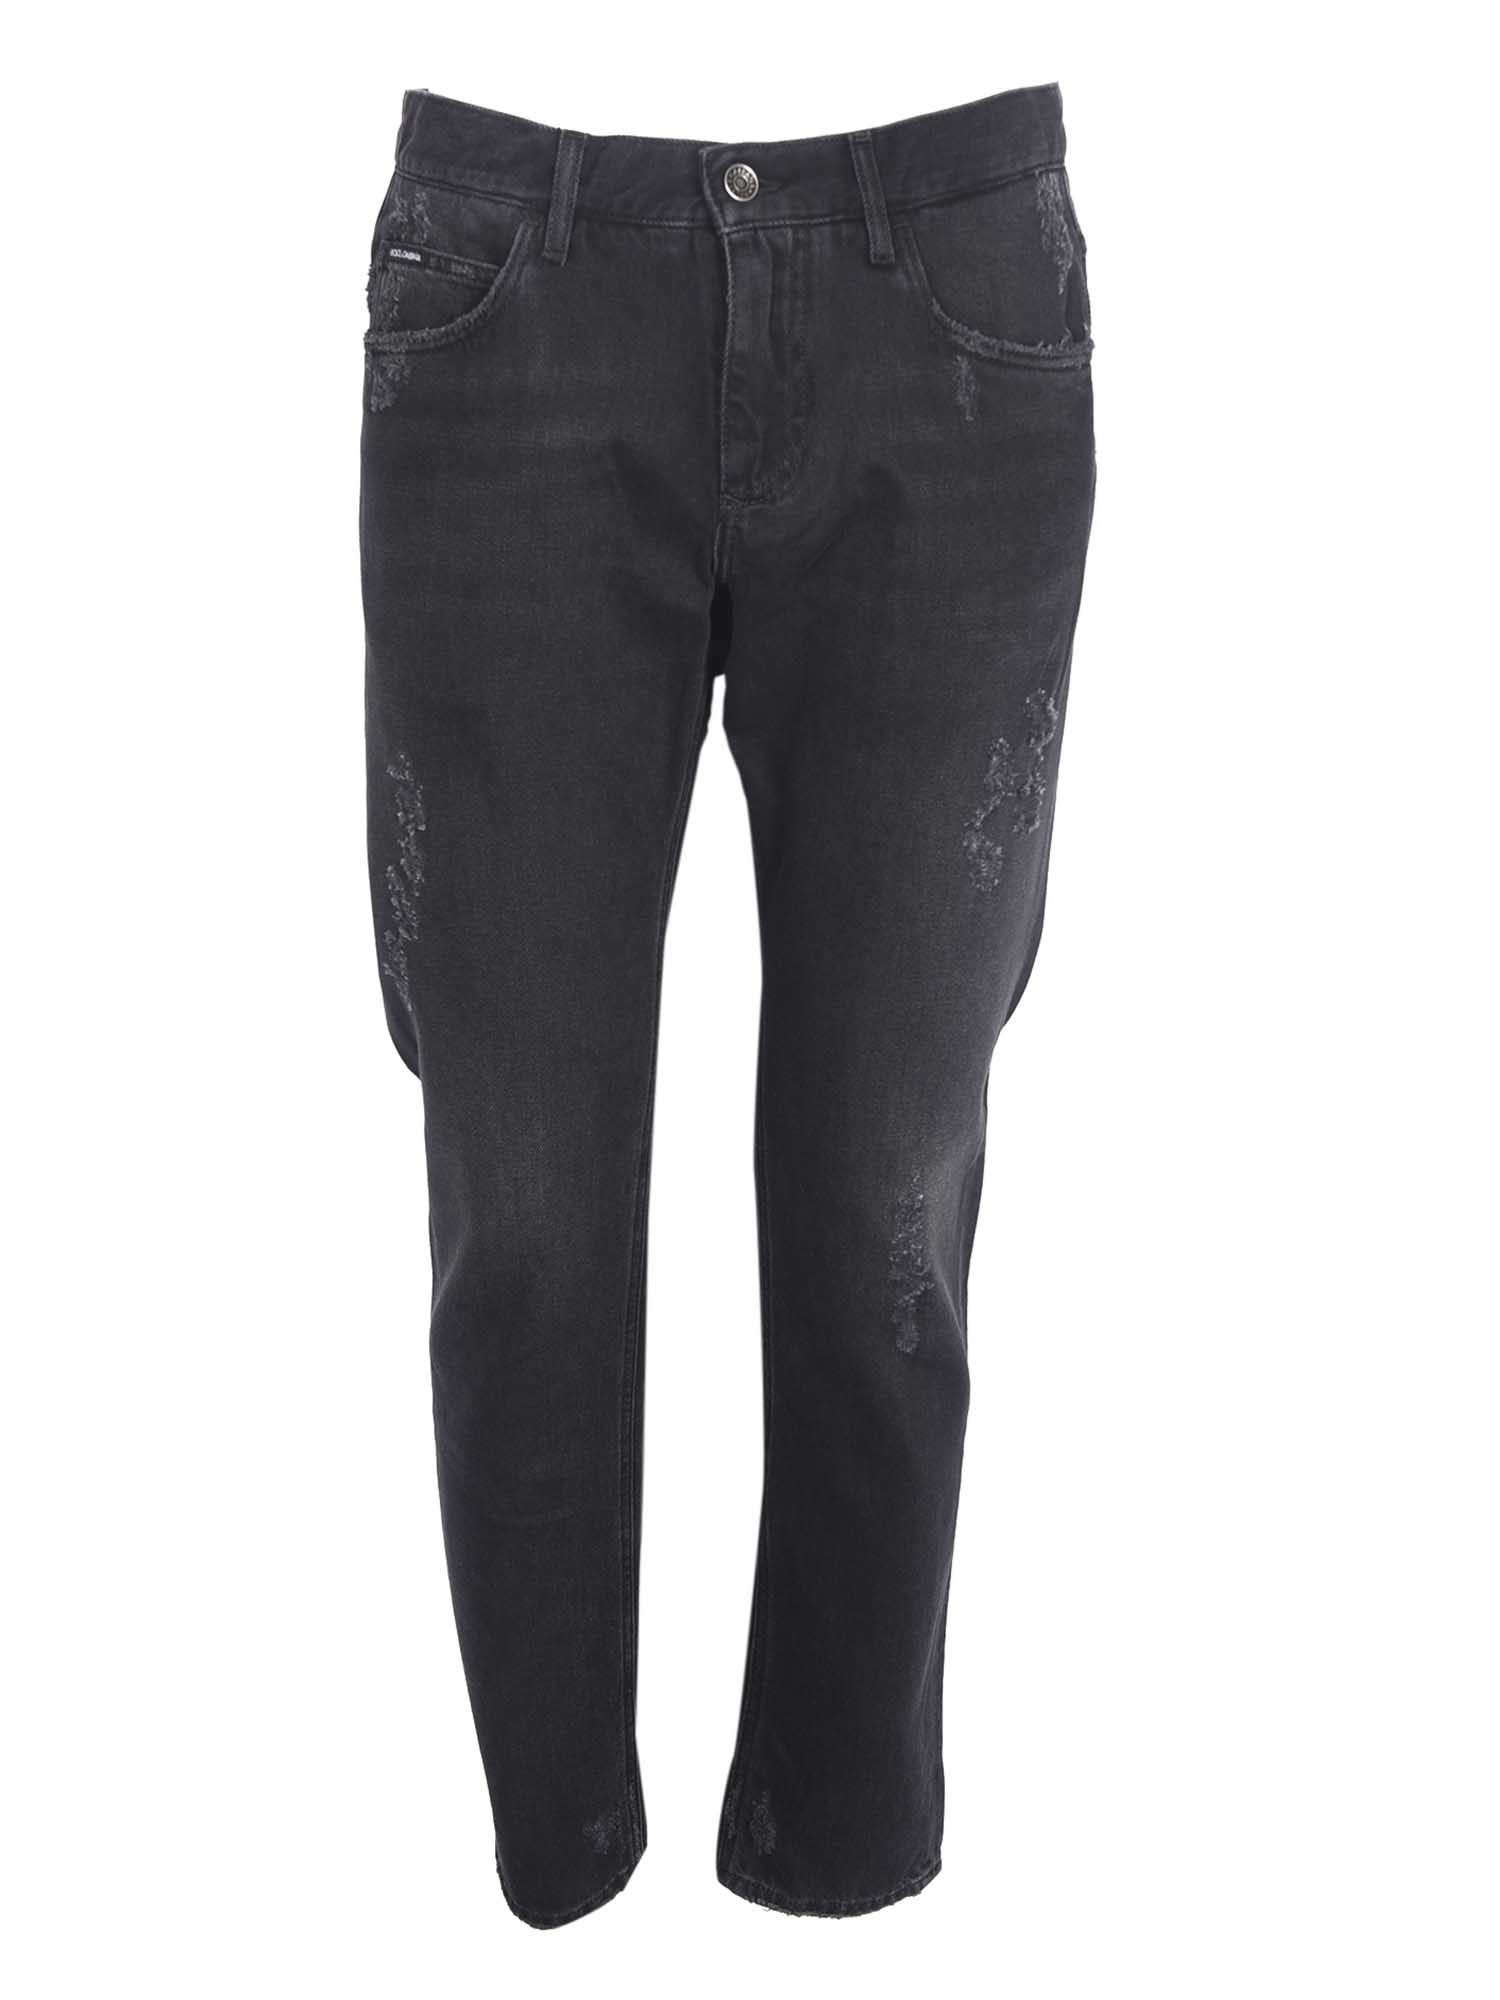 Dolce & Gabbana WORN EFFECT JEANS IN BLACK